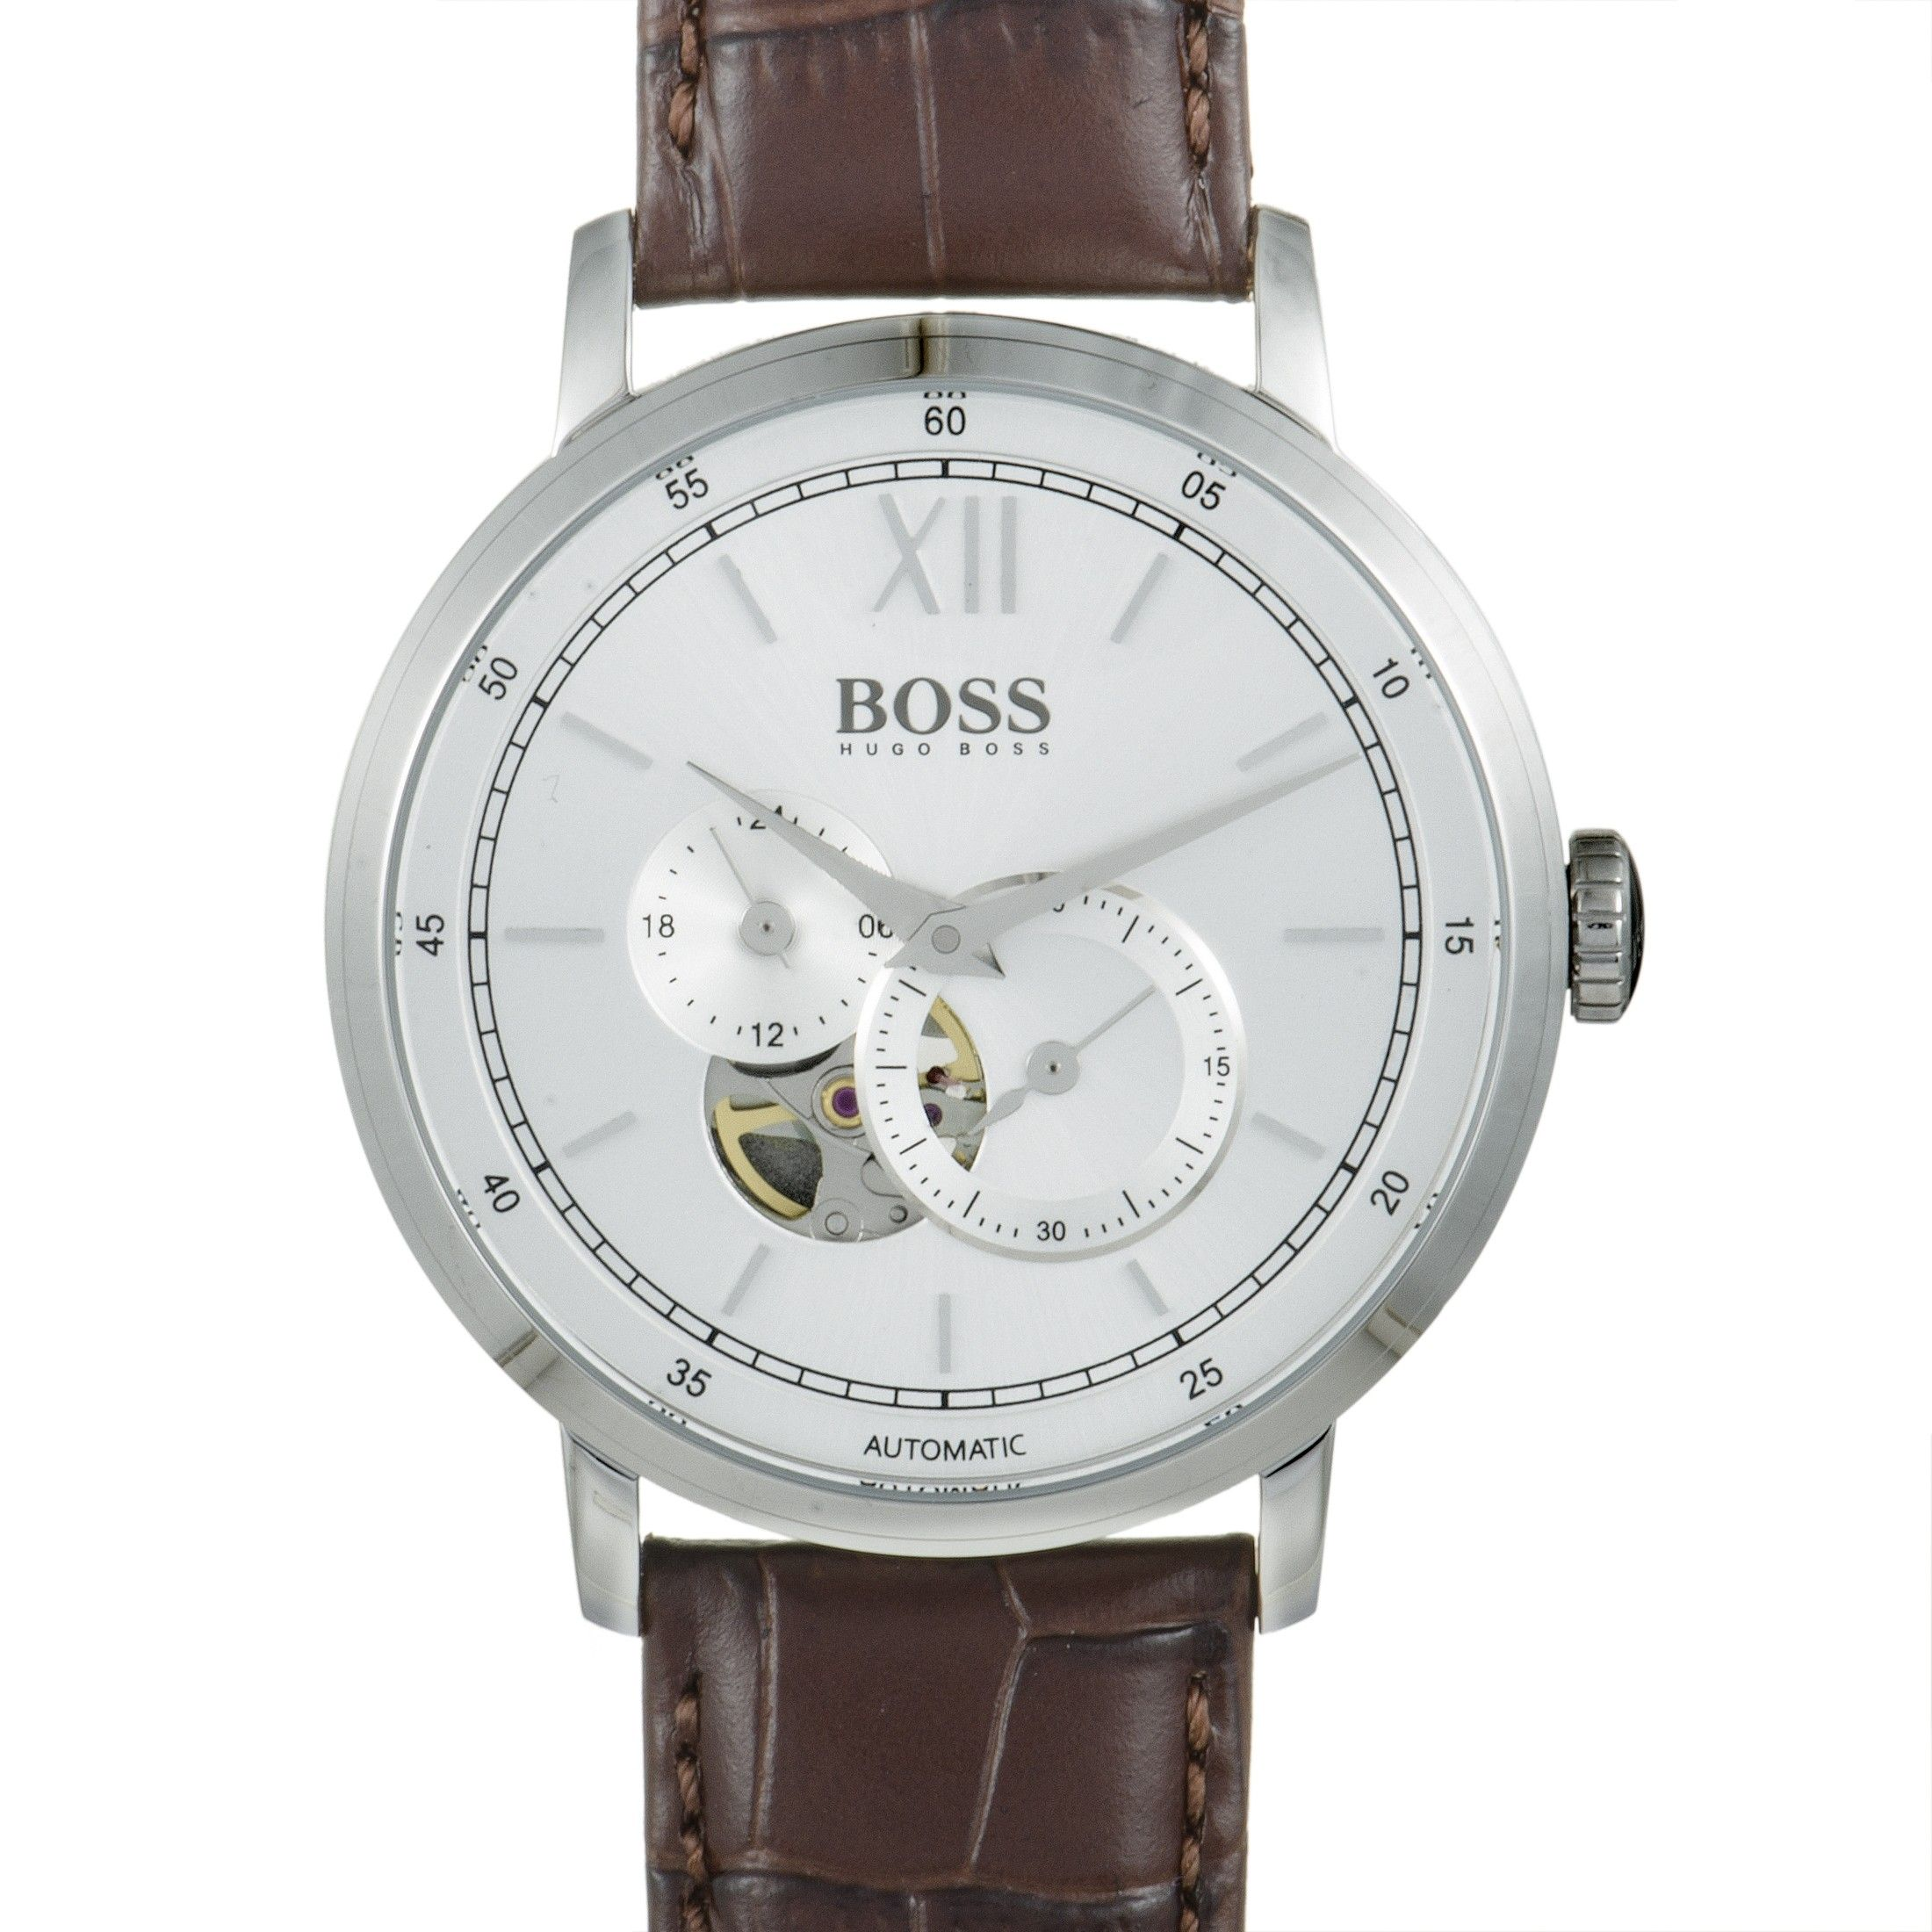 Hugo Boss Signature Men S Silver Visible Movement Watch Brown Leather Band 1513505